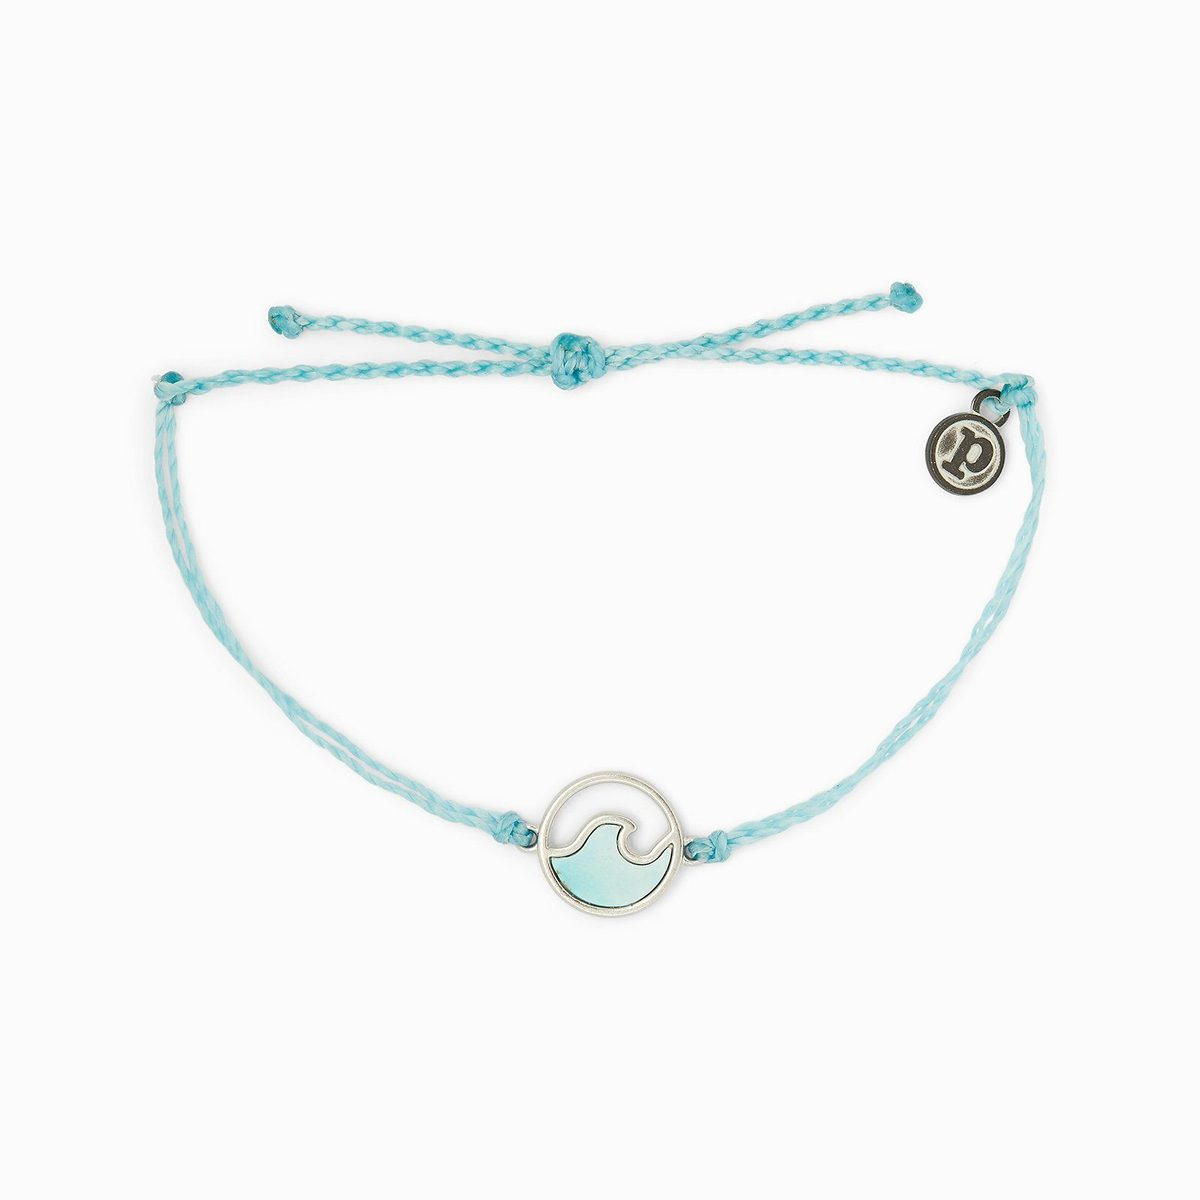 Stone Wave Charm Bracelet by Pura Vida - Crystal Blue